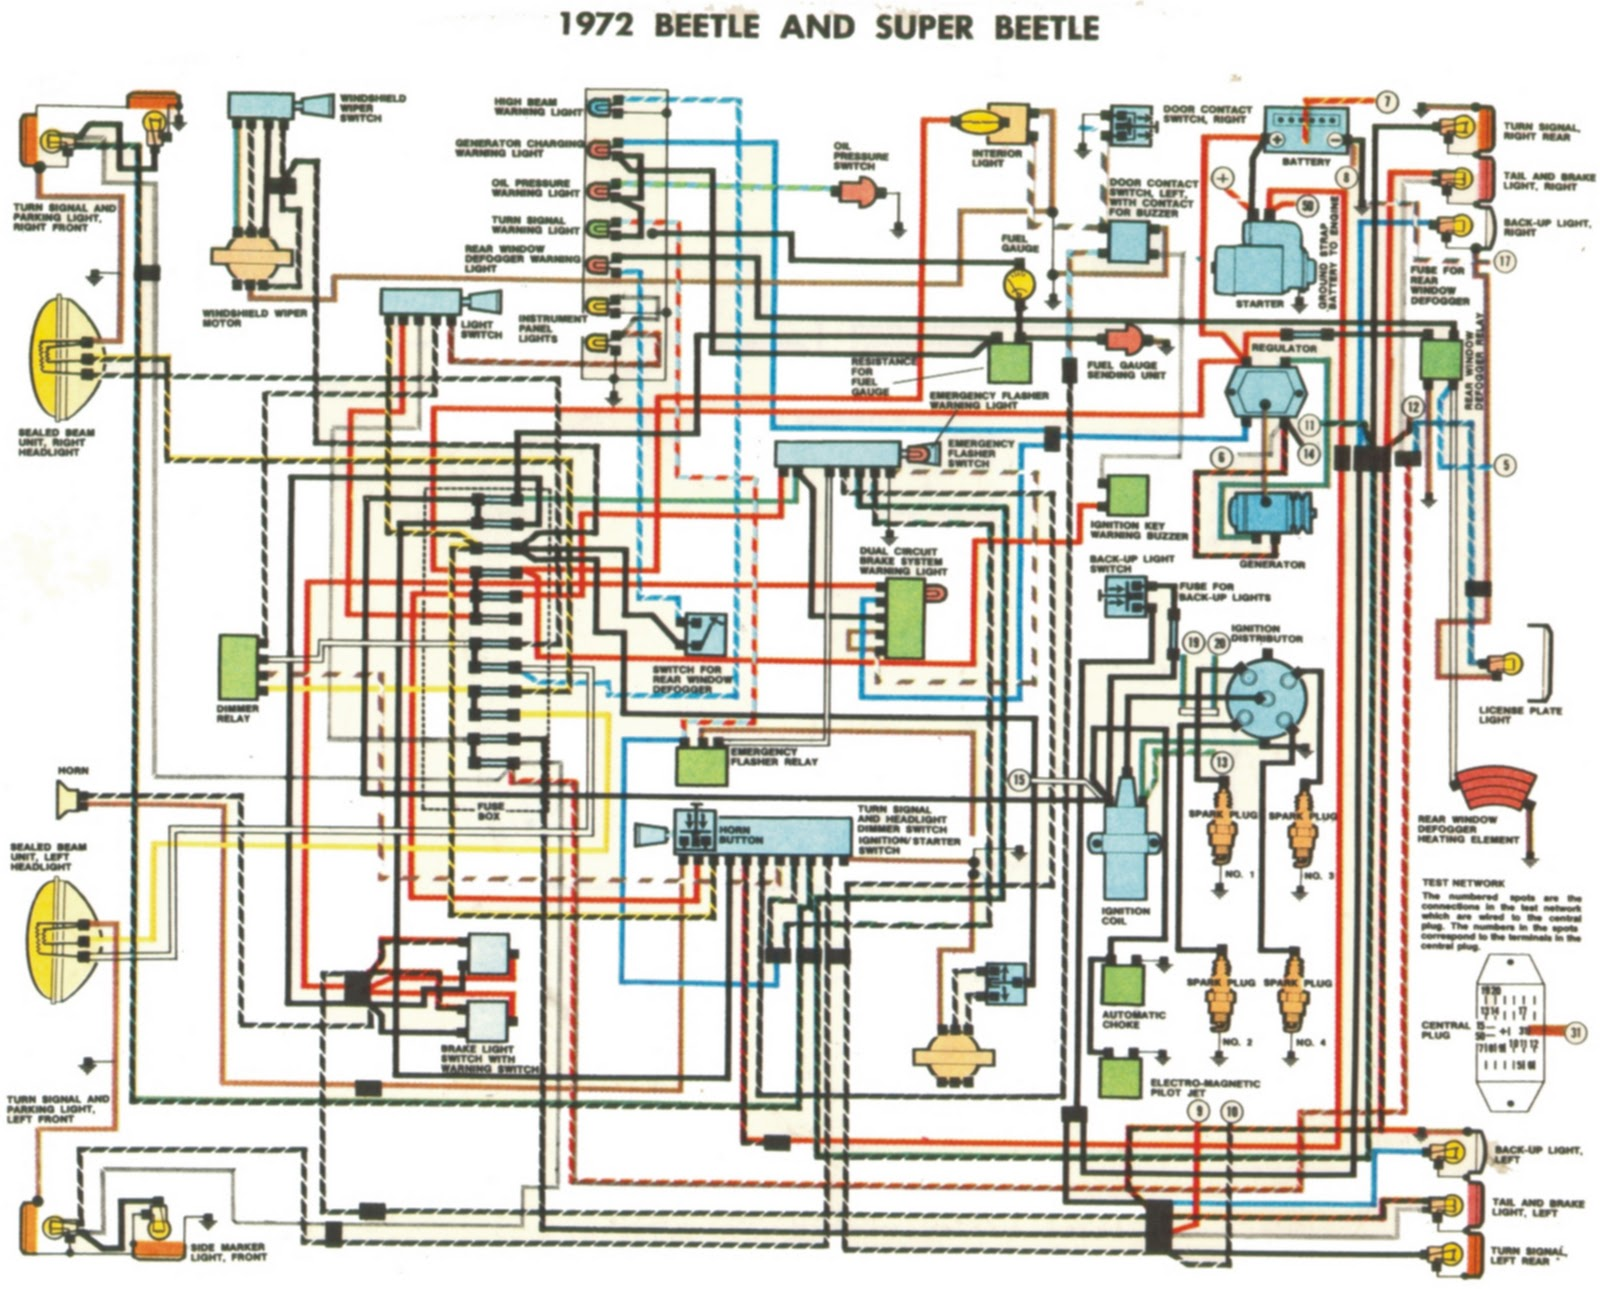 1972 beetle and super beetle wiring diagrams wiring diagrams for a 1973 vw super beetle readingrat net 1973 vw beetle wiring diagram at virtualis.co